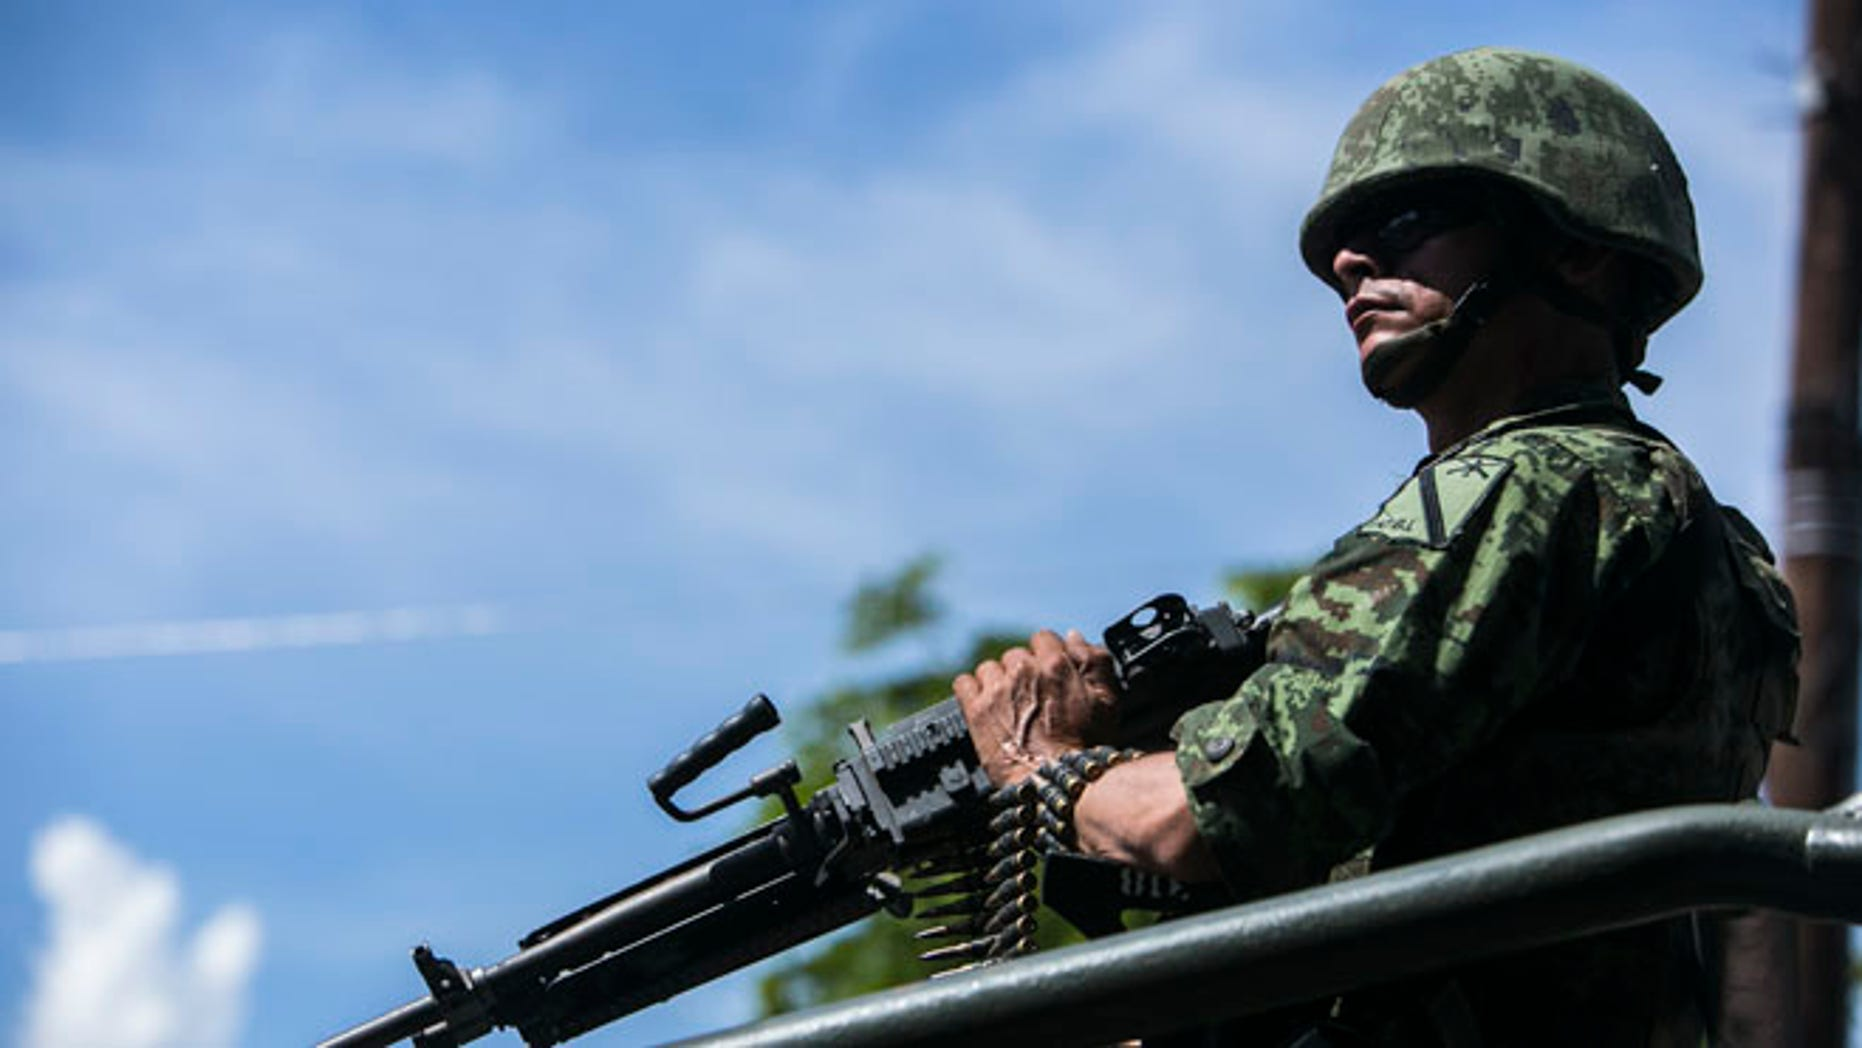 A soldier rides atop a military vehicle in a convoy carrying the bodies of soldiers killed one day earlier in an ambush, inside the Novena Military Zone in Culiacan, Sinaloa State, Mexico, Saturday, Oct. 1, 2016. A brazen ambush on a military convoy Friday left five soldiers dead and 10 wounded in what was the worst attack on military personnel since 2015, when drug cartel gunmen in the state of Jalisco shot down an army helicopter with a rocket launcher, killing 10 people.(AP Photo/Rashide Frias)